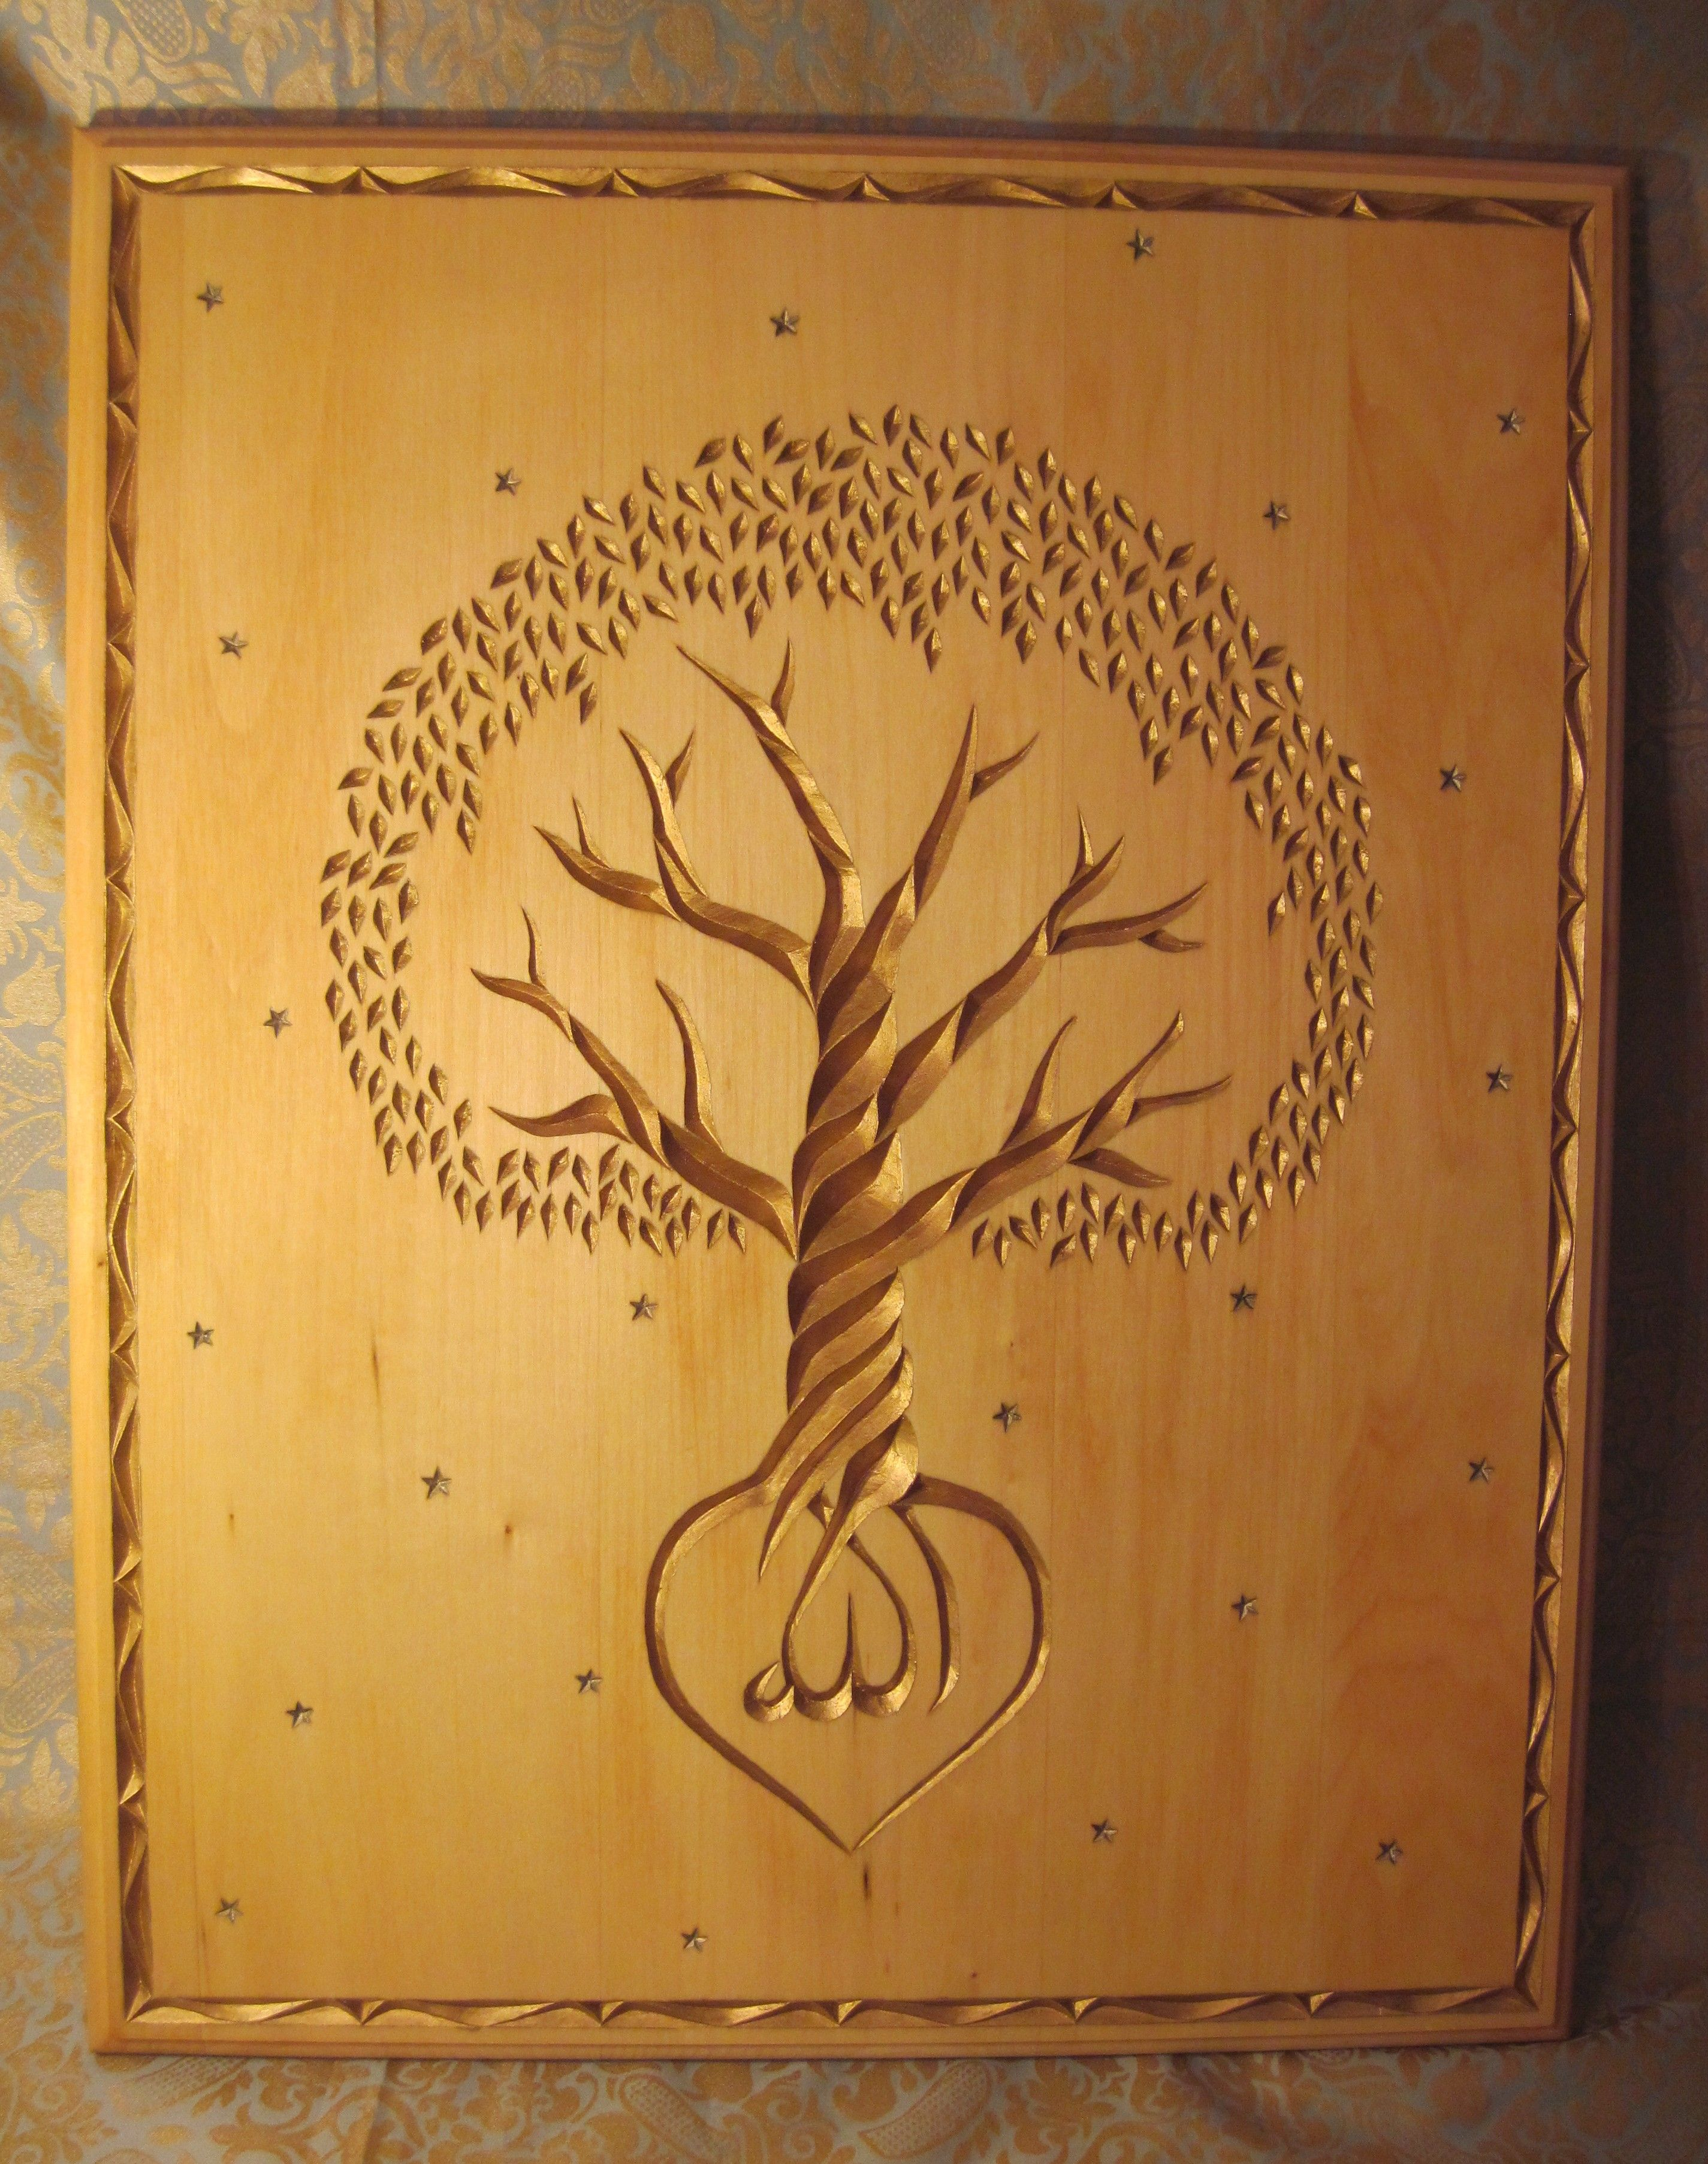 Relief Carved Tree Design